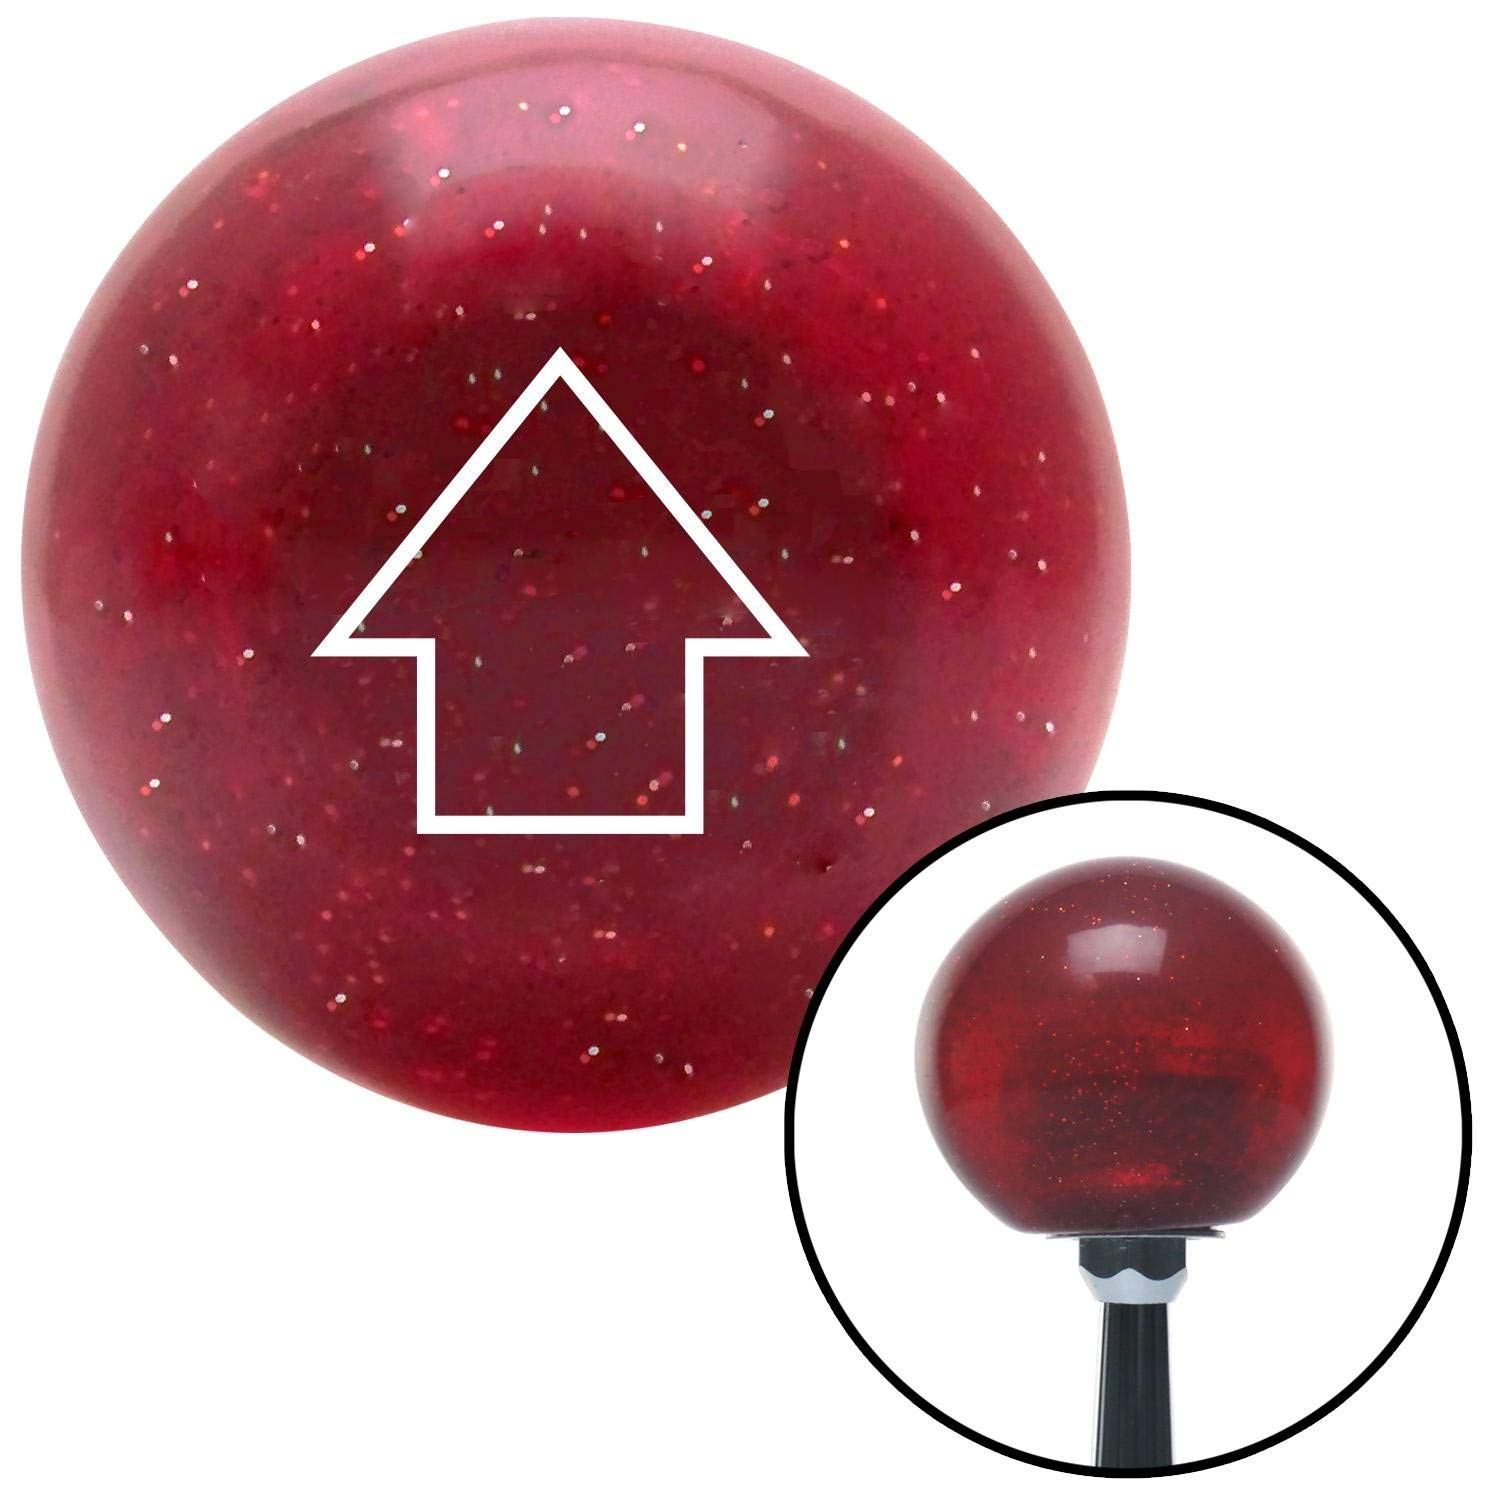 American Shifter 48145 Red Metal Flake Shift Knob with 16mm x 1.5 Insert White Classic Arrow Up